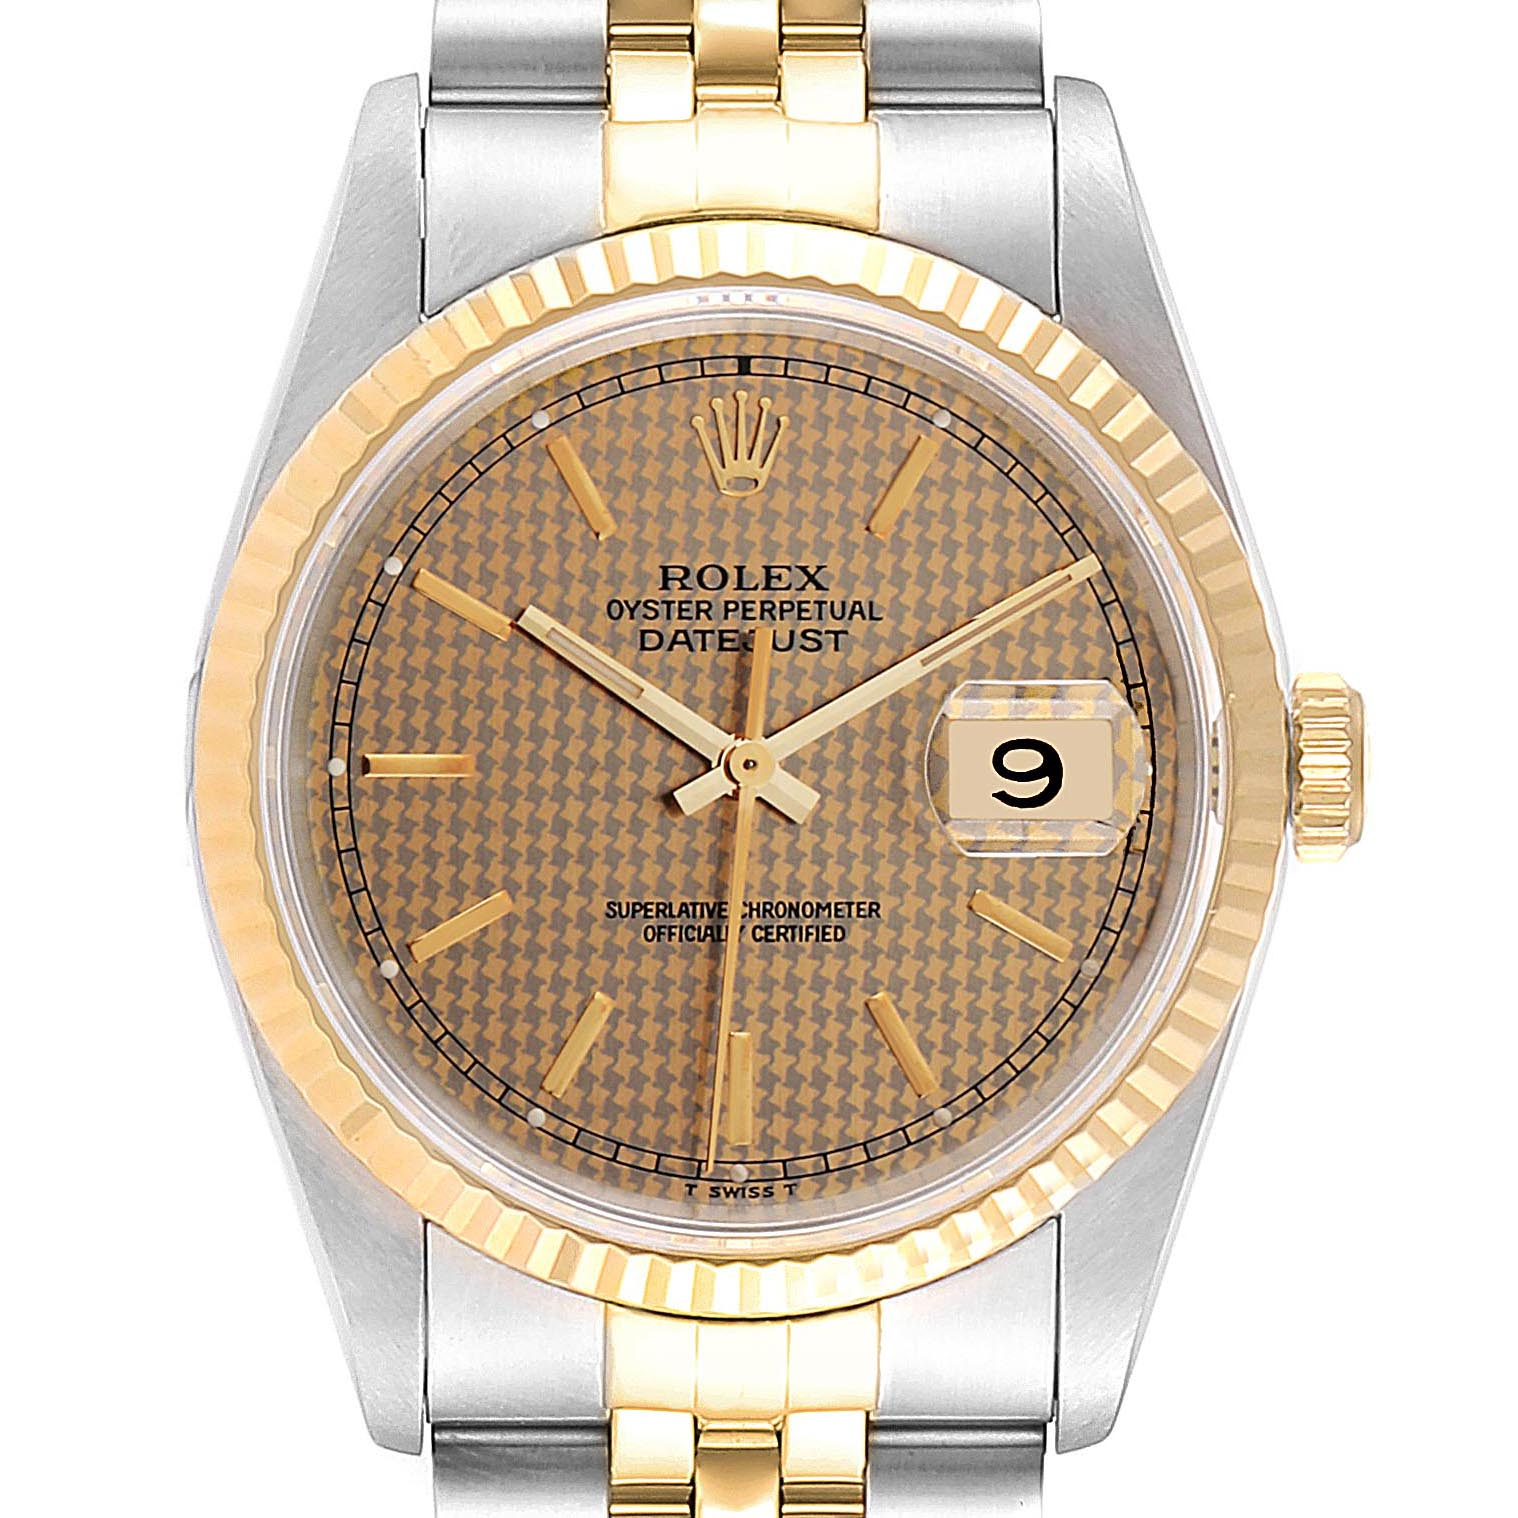 Photo of Rolex Datejust HoundsTooth Dial Steel Yellow Gold Mens Watch 16233